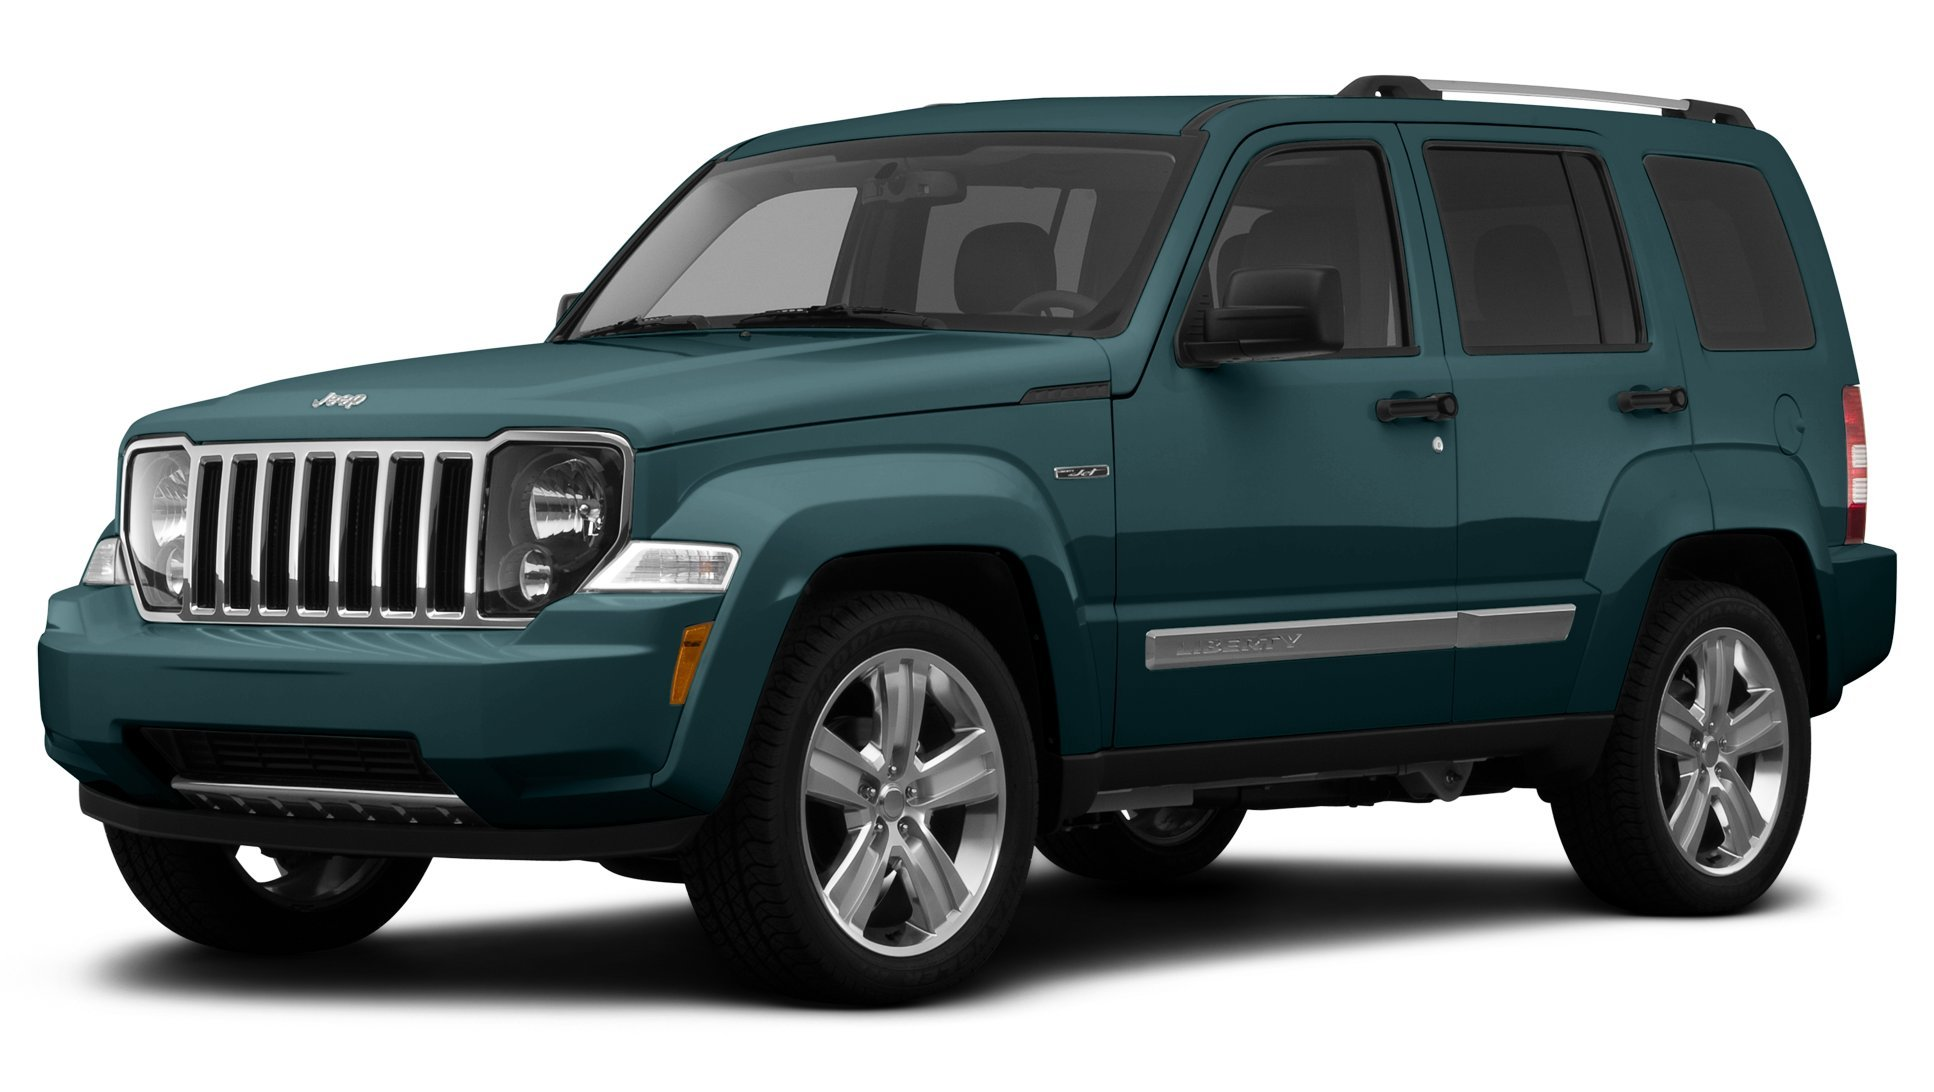 2012 jeep liberty reviews images and specs. Black Bedroom Furniture Sets. Home Design Ideas